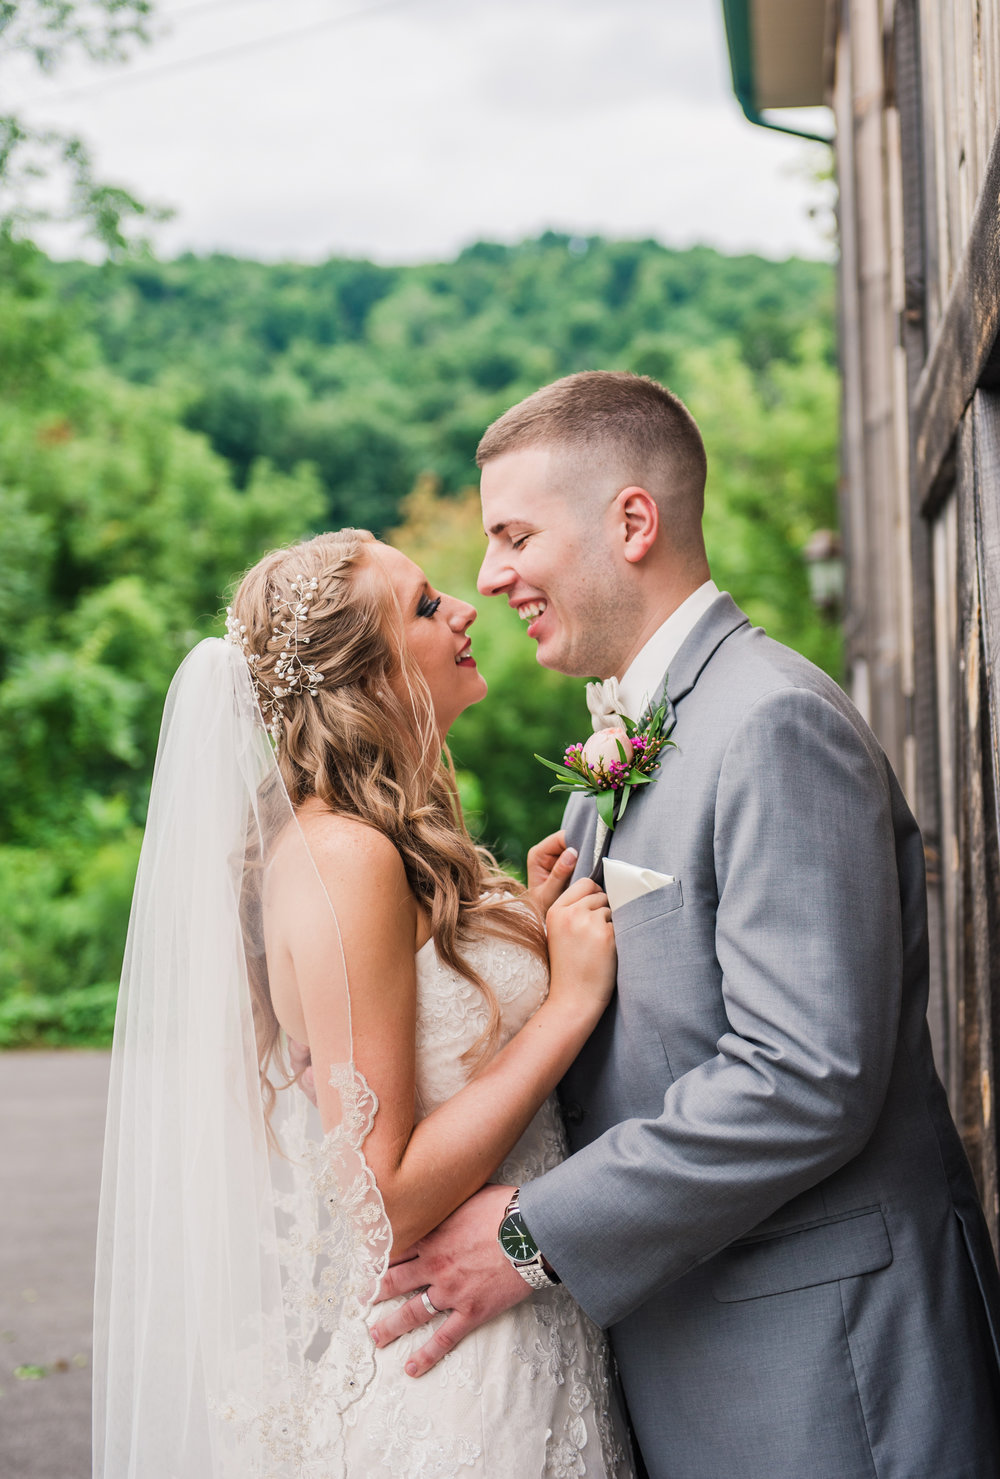 Wolf_Oak_Acres_Central_NY_Wedding_JILL_STUDIO_Rochester_NY_Photographer_DSC_8662.jpg